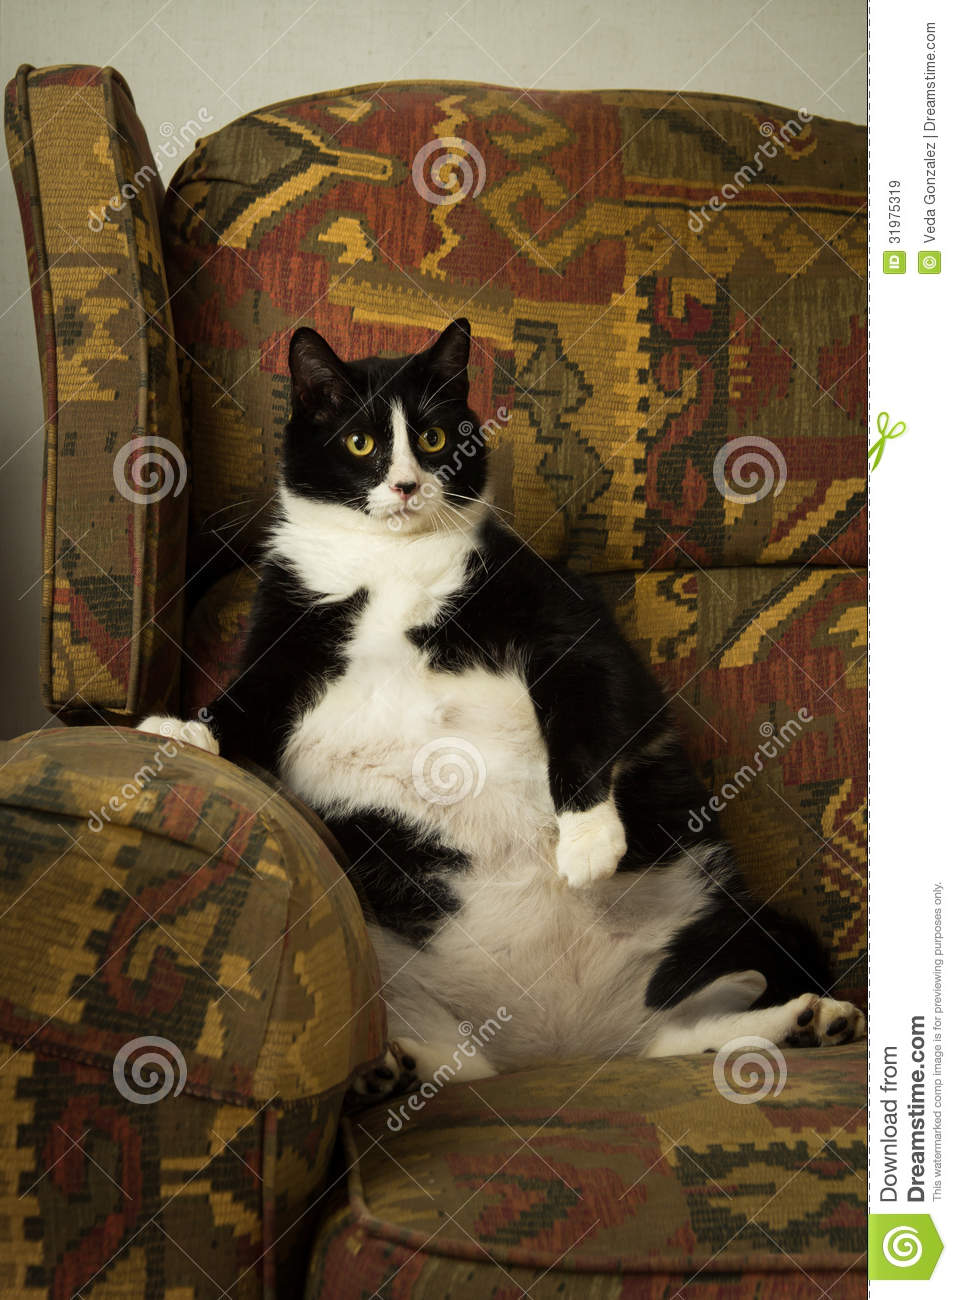 Furniture Recliner Chair Fat Cat On Recliner Royalty Free Stock Images - Image